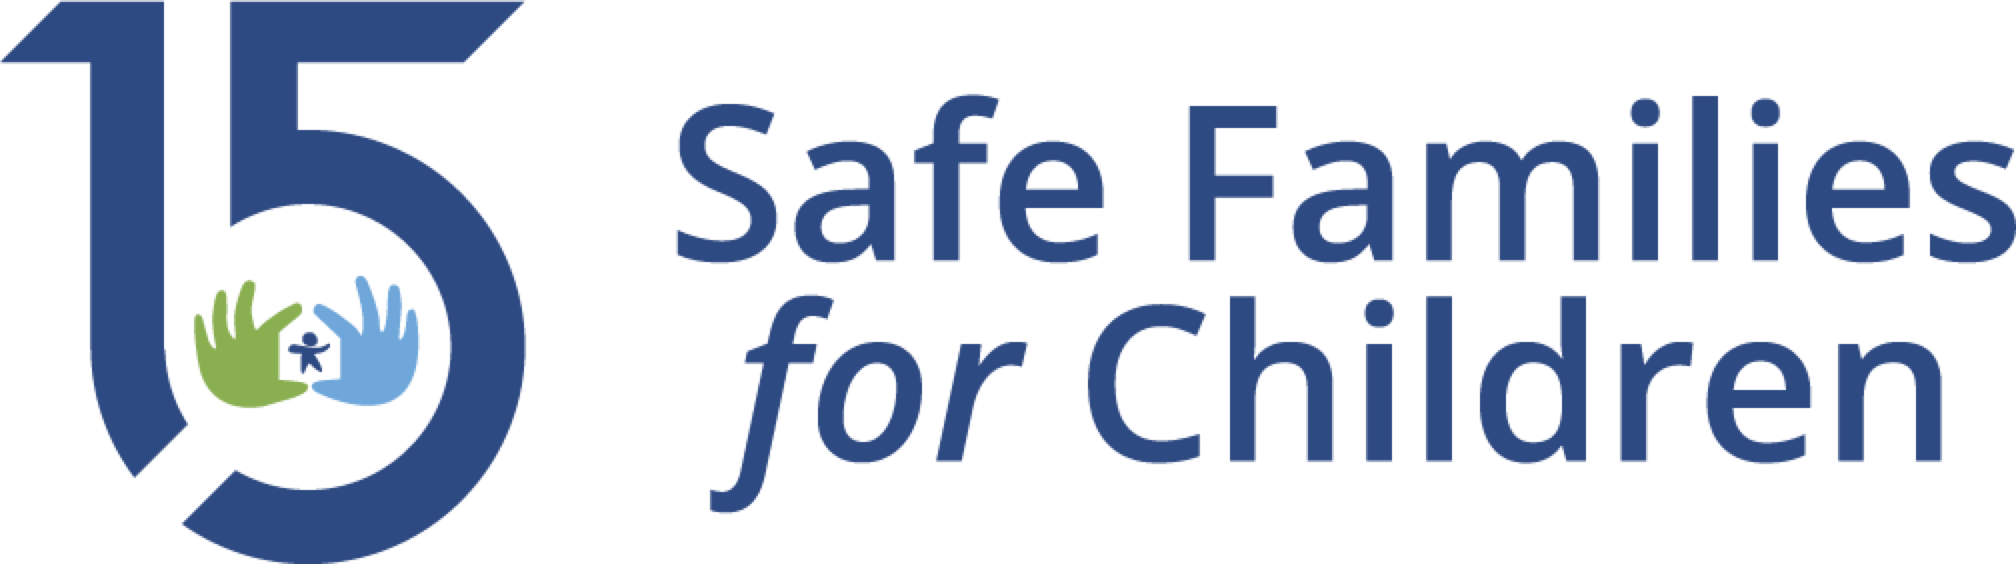 Safe Families for Children Logo